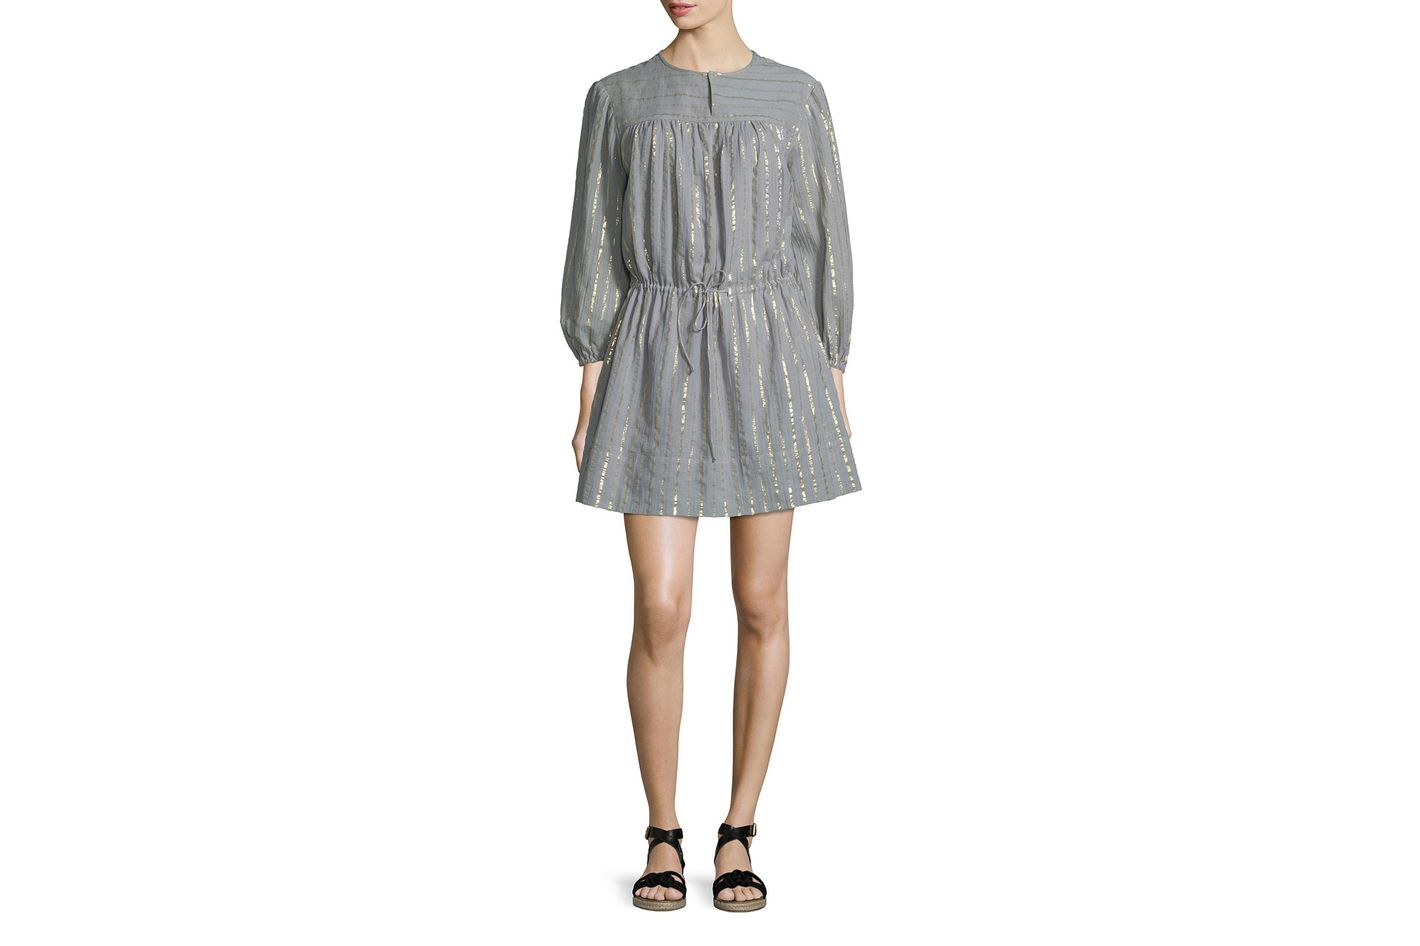 Étoile Isabel Marant Metallic Peasant Dress